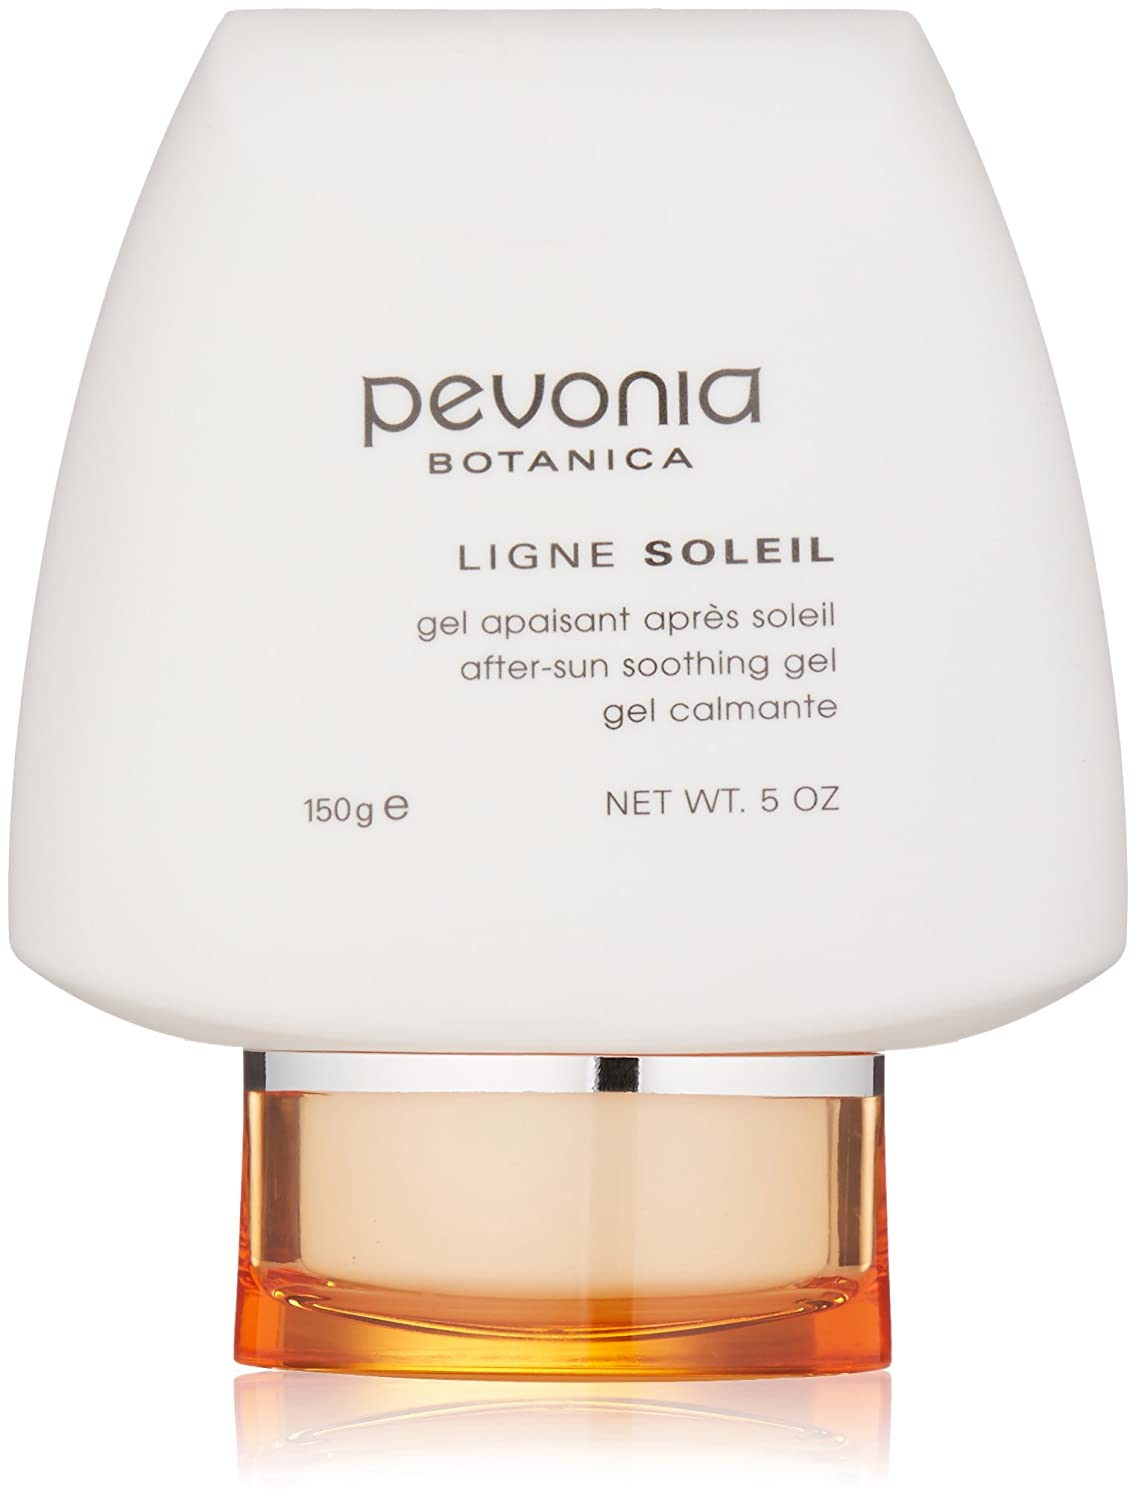 Pevonia Ligne Soleil After Sun Soothing Gel, 5-Ounce, 0.352-Inch 7016